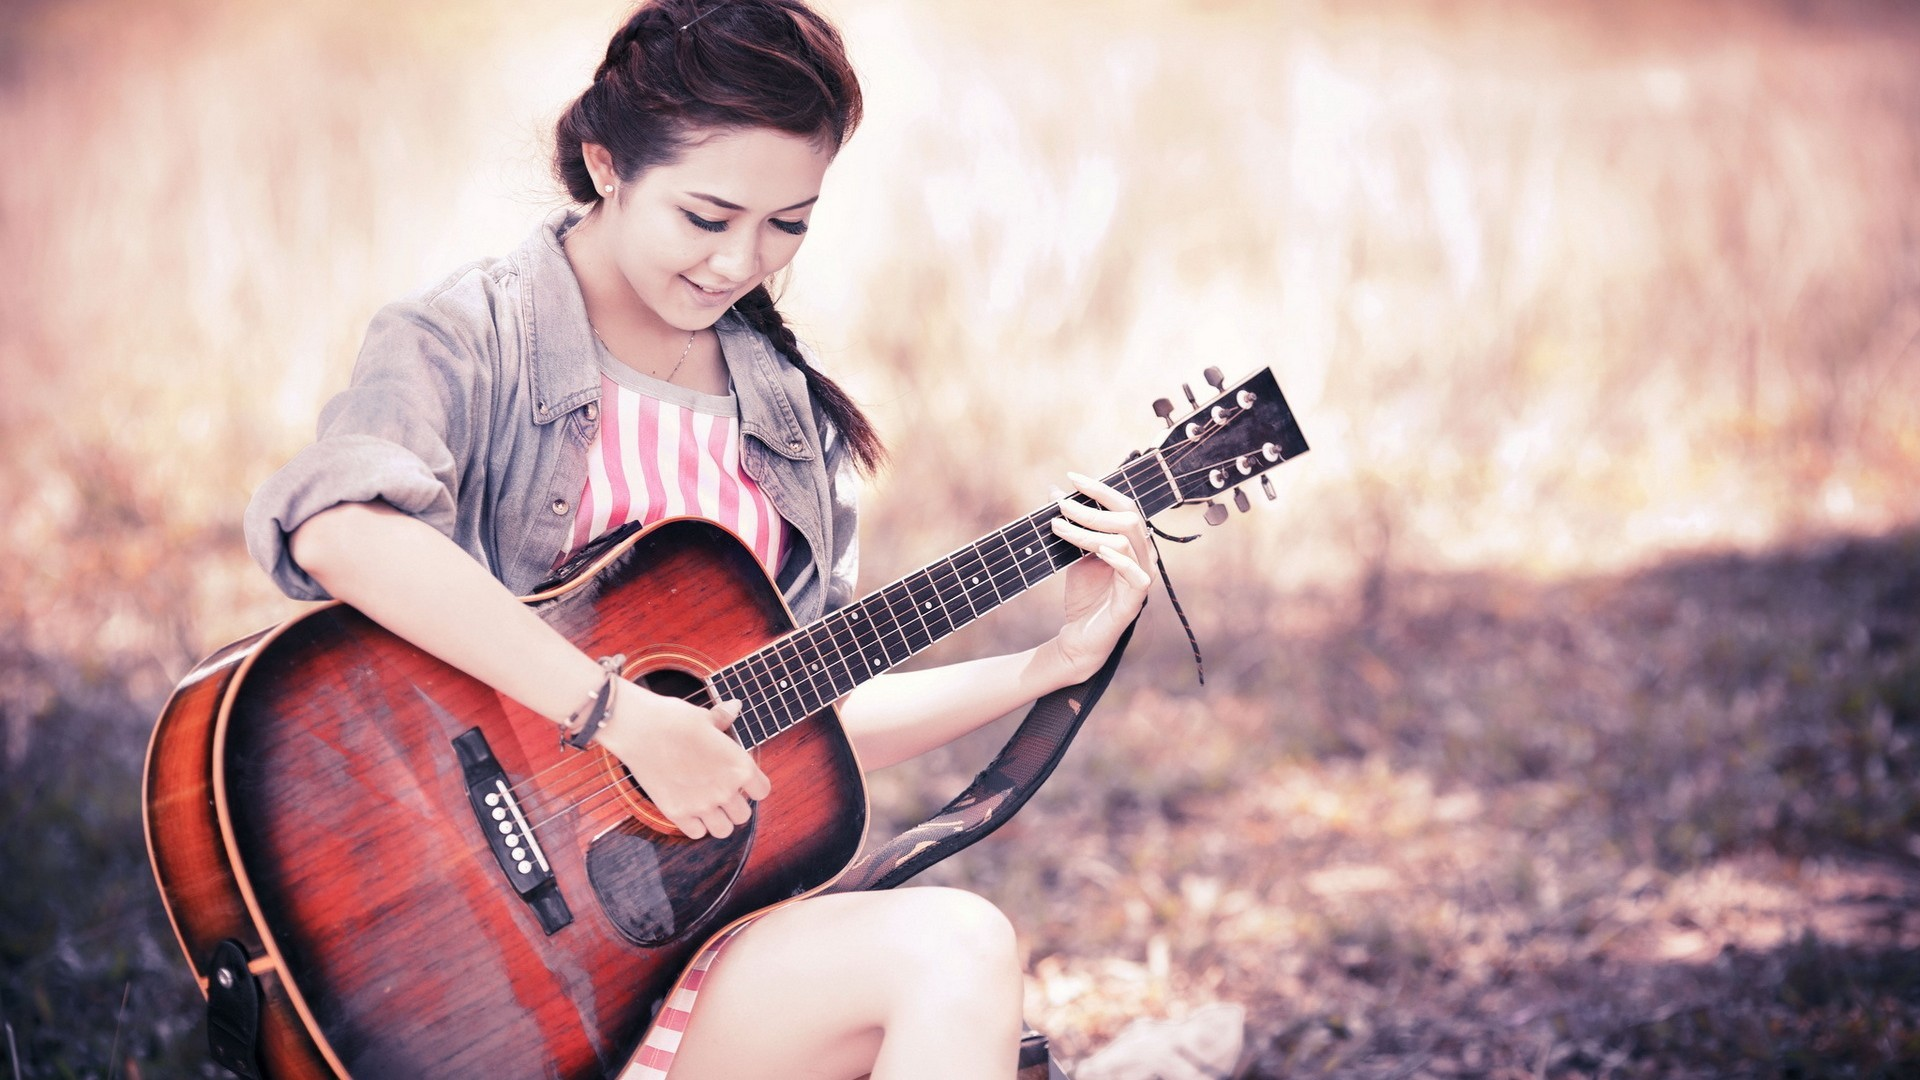 Res: 1920x1080, Cute Stylish Girls With Guitar Wallpaper. Download : Original Resolution